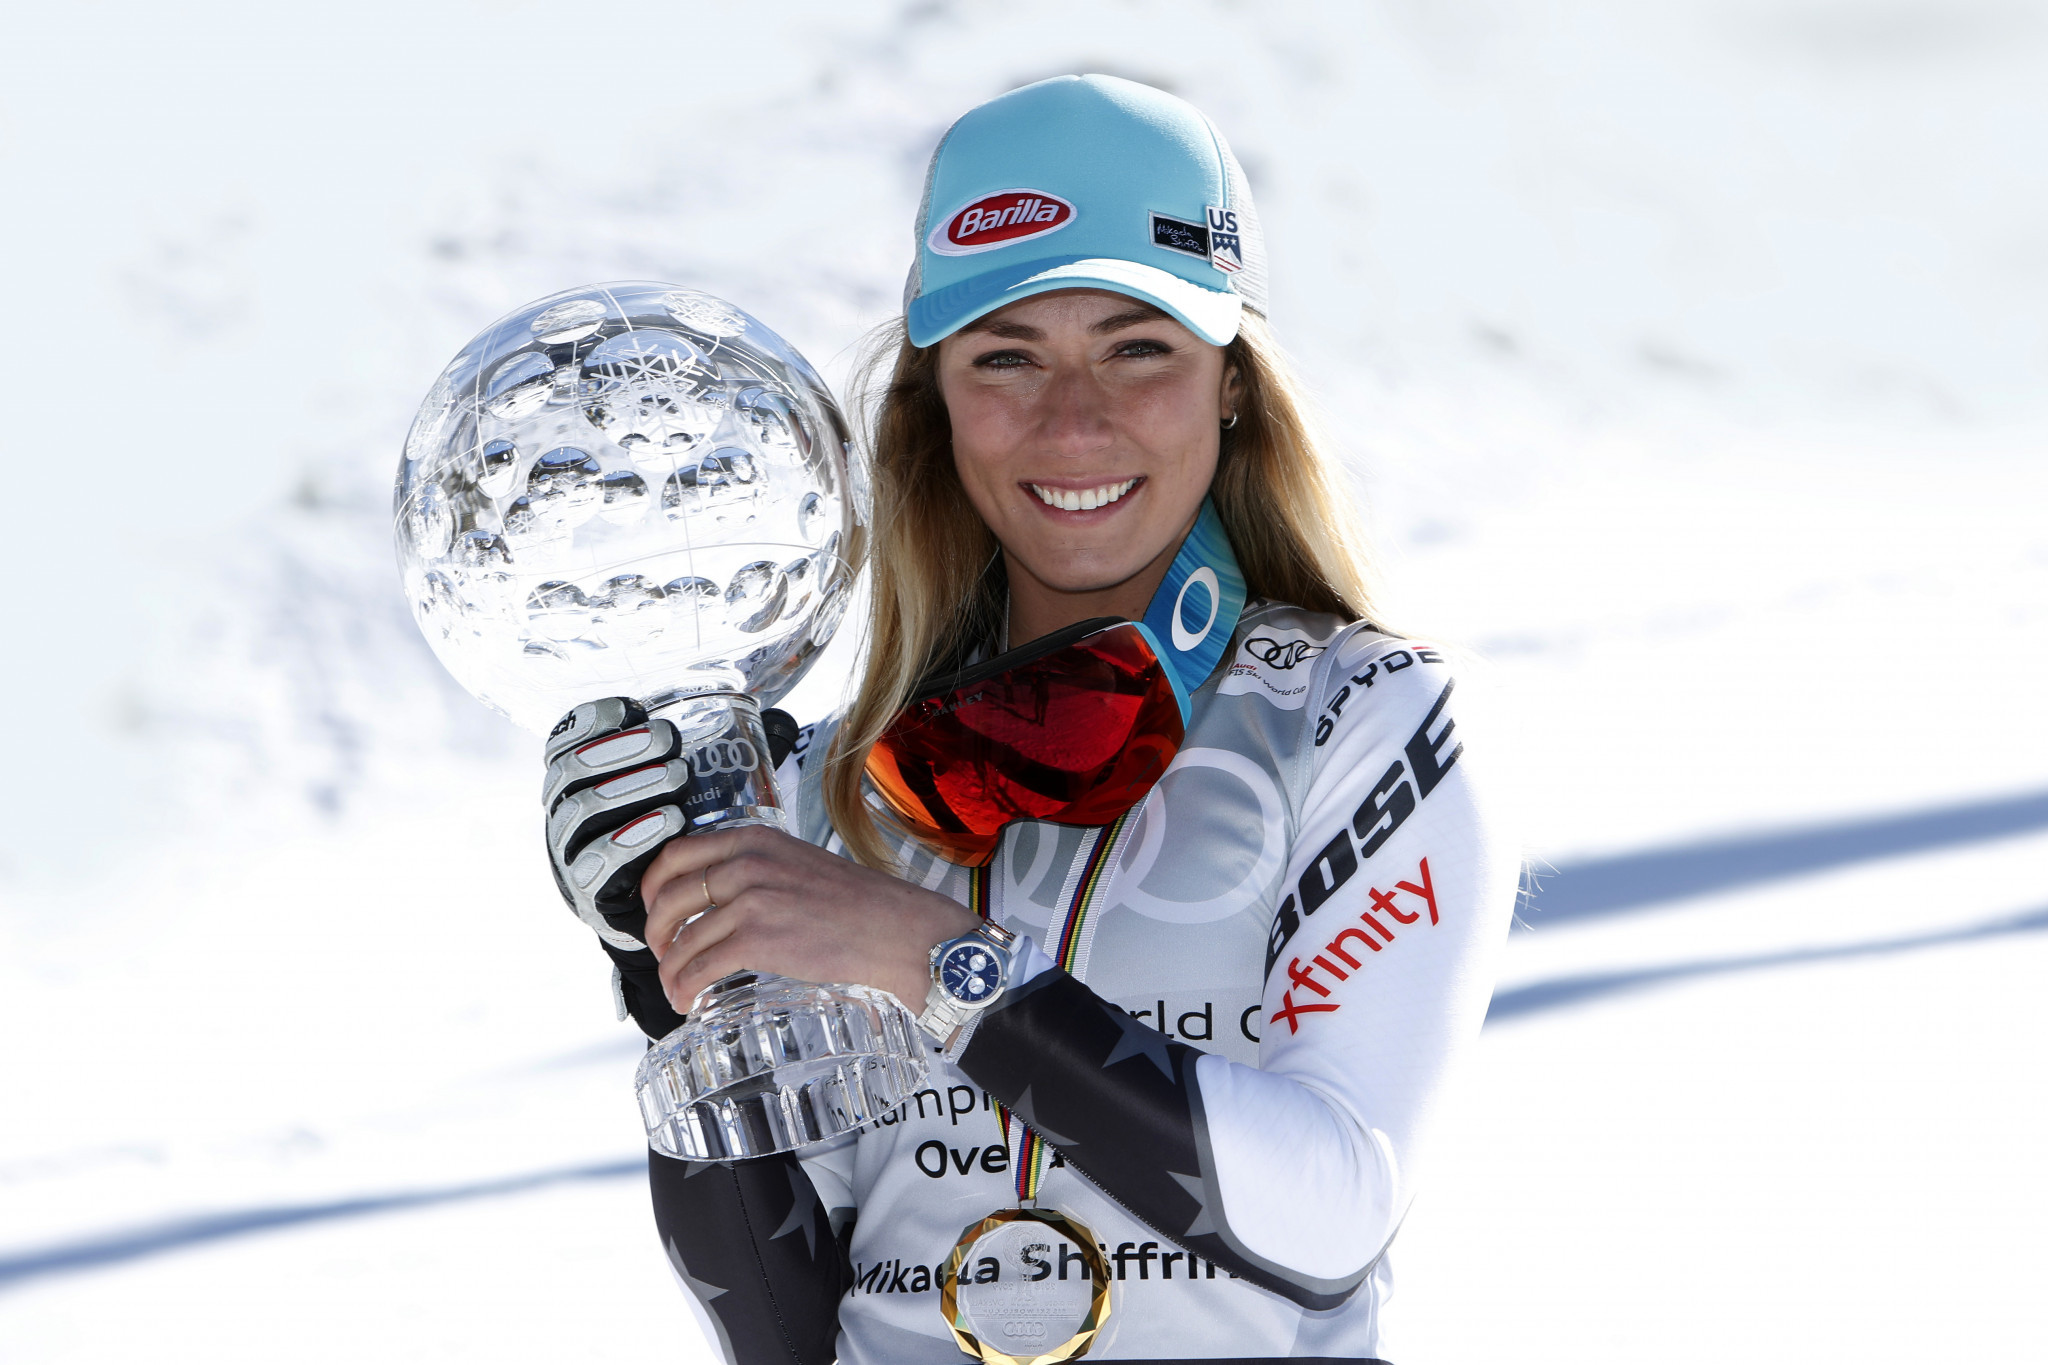 Shiffrin achieves record breaking season with super-G victory in Grandvalira Soldeu